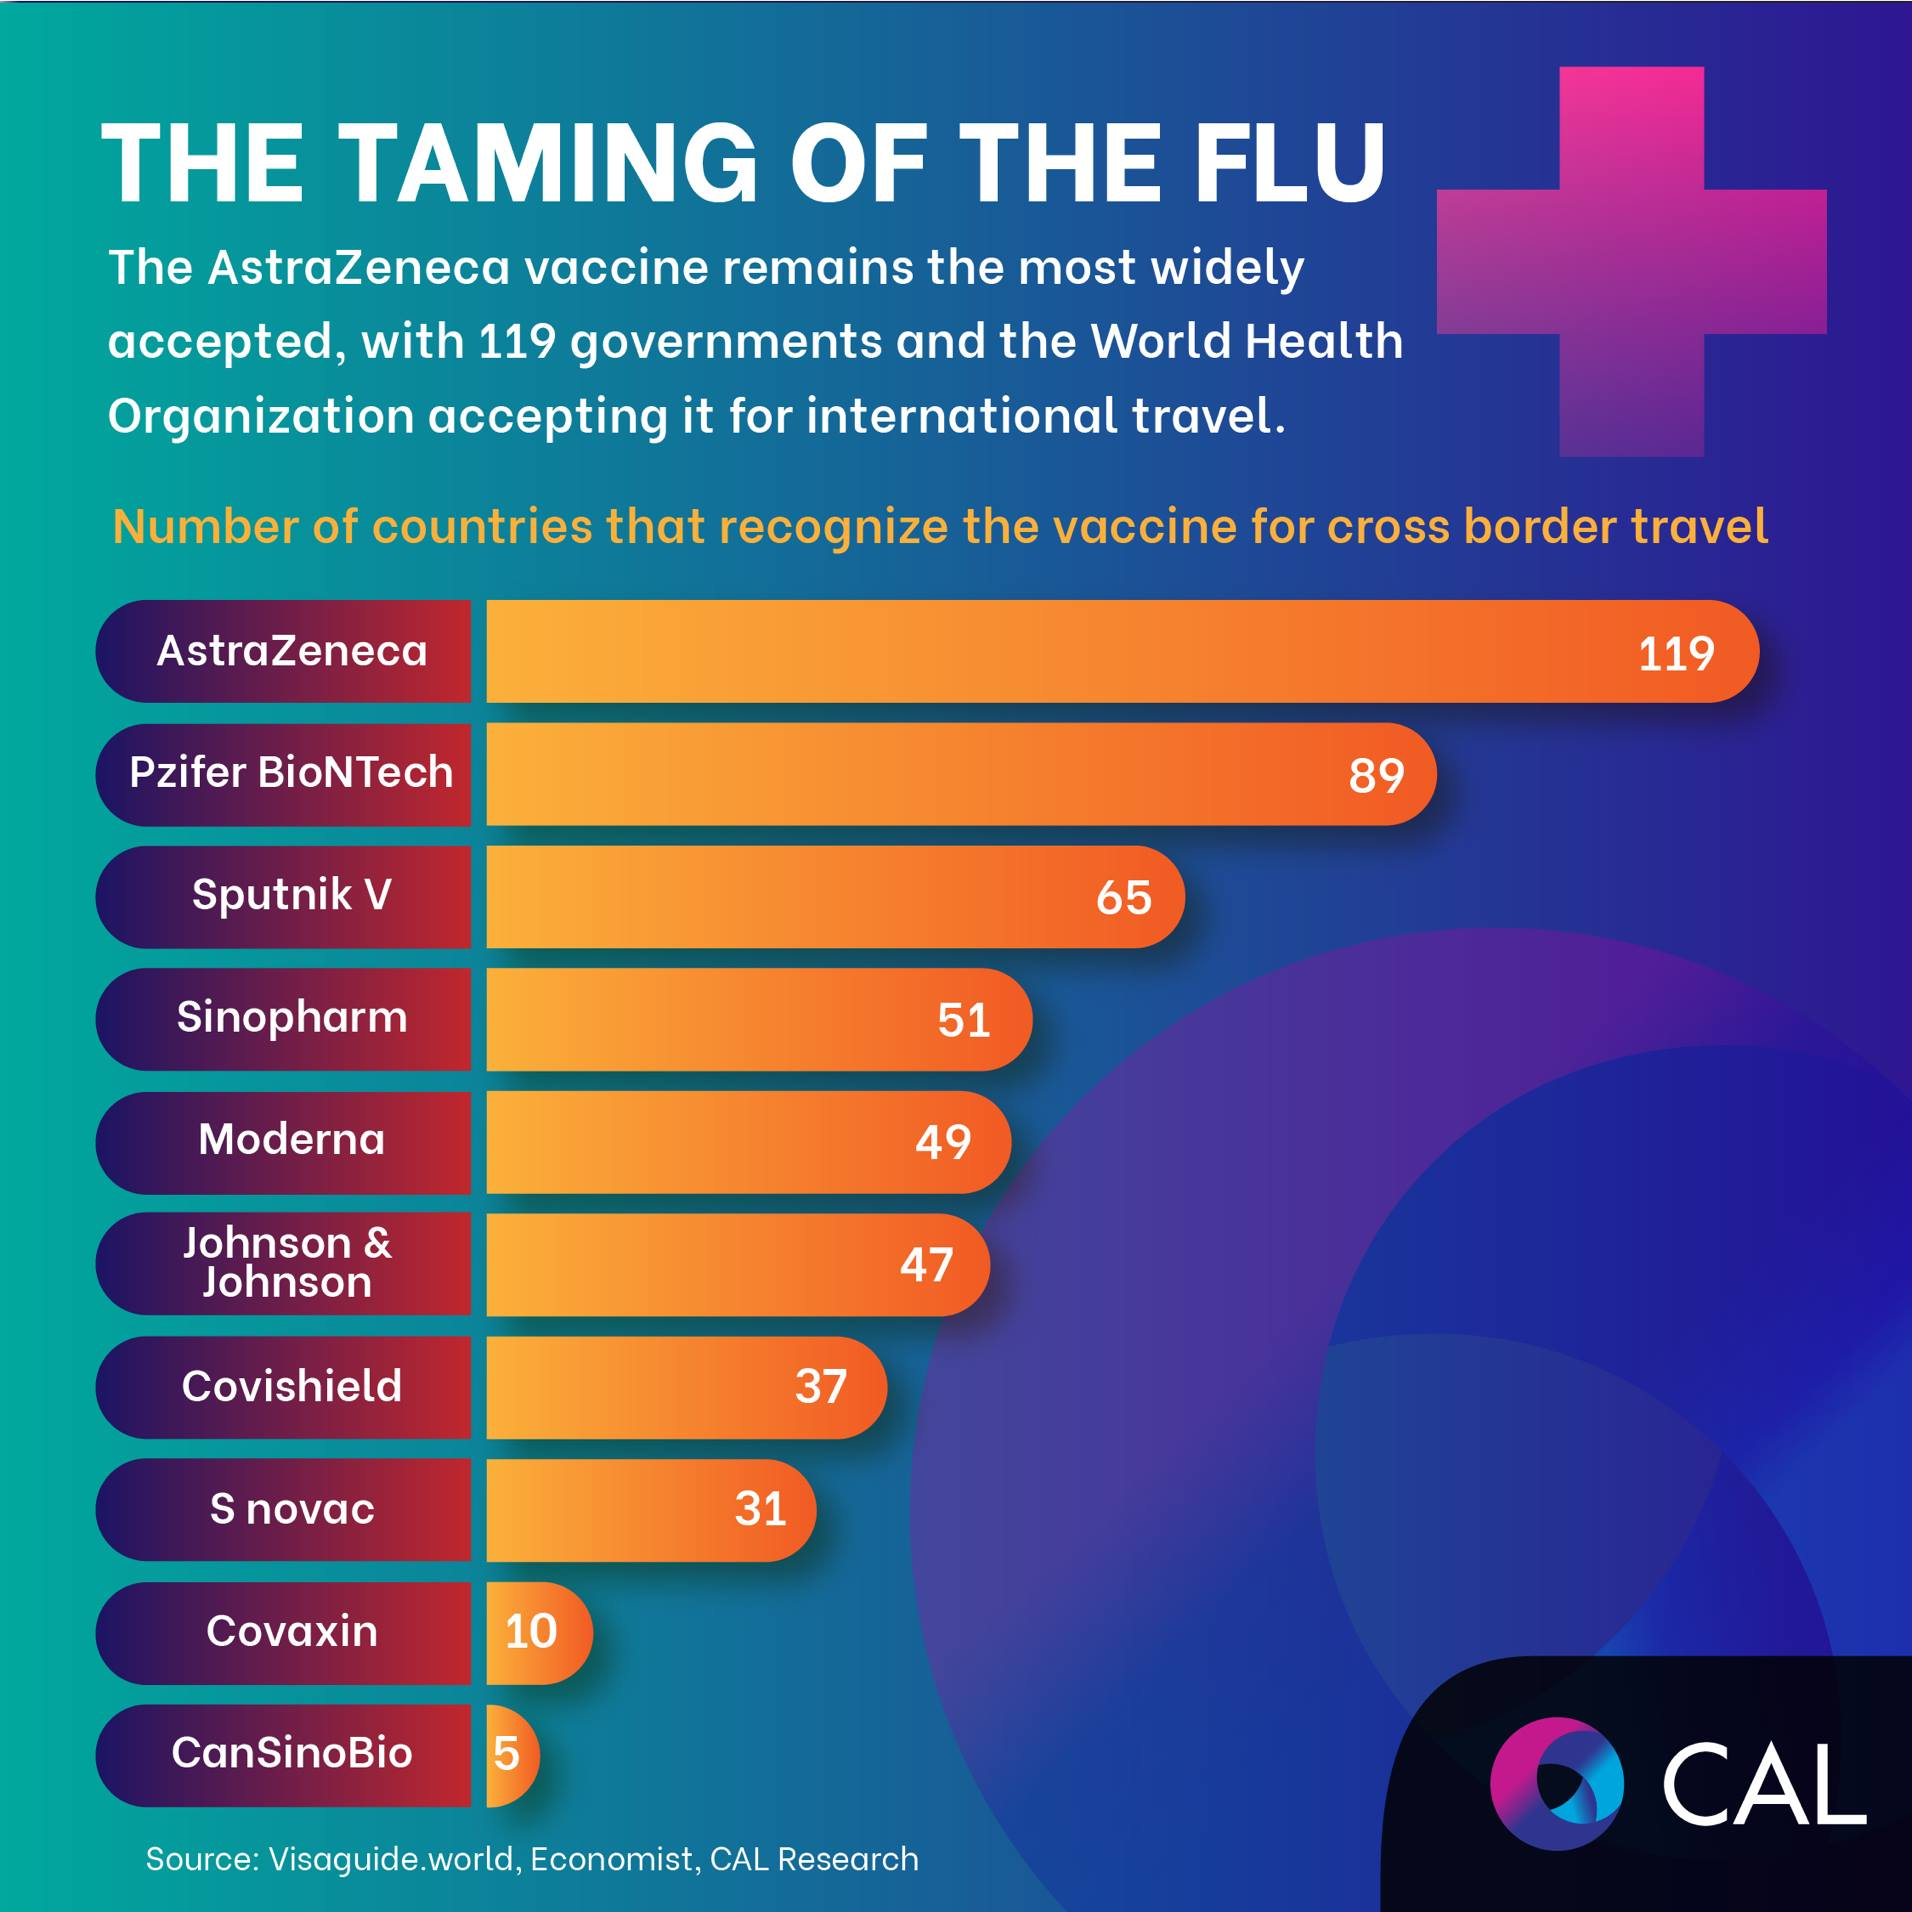 The AstraZeneca vaccine remains the most widely accepted, with 119 governments and the WHO accepting it for international travel #CAL #CALResearch #vaccines #covid19